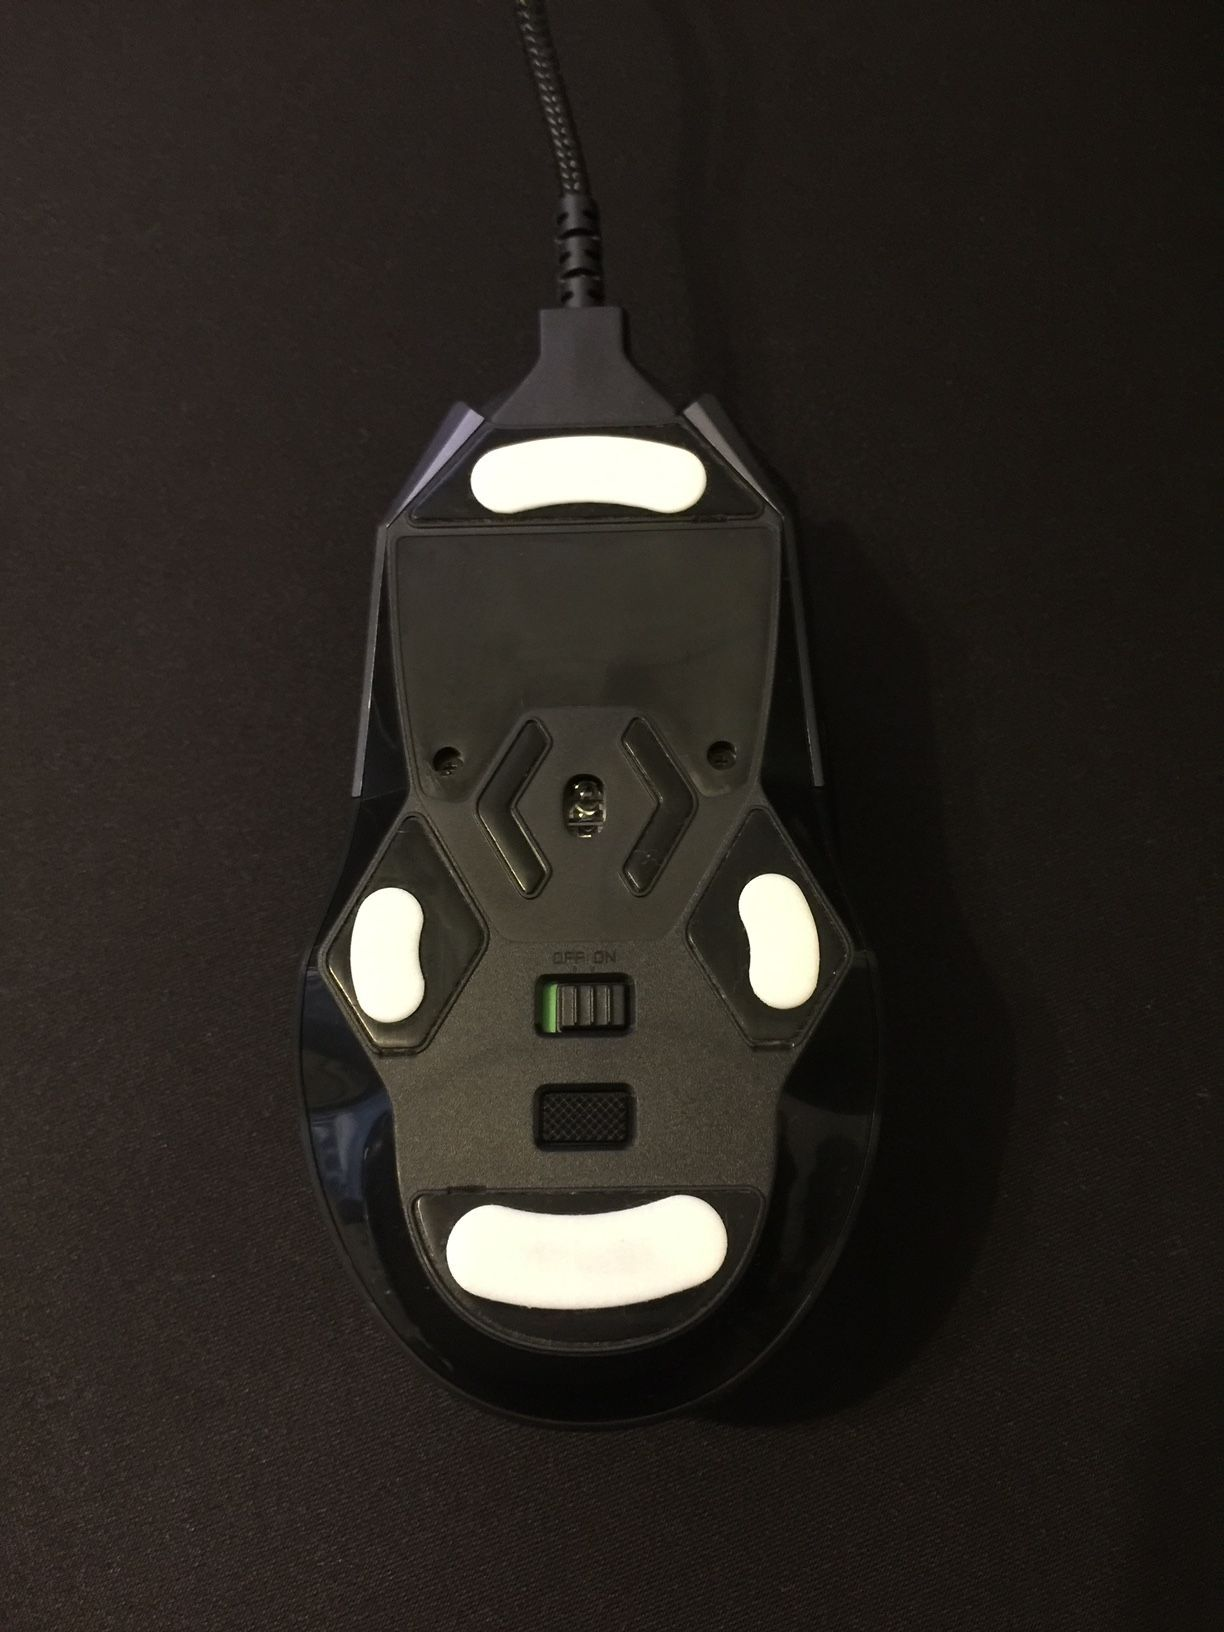 Review Of Logitech G900 Chaos Spectrum Wireless Gaming Mouse By Ino Page 47 An Overclocking Community